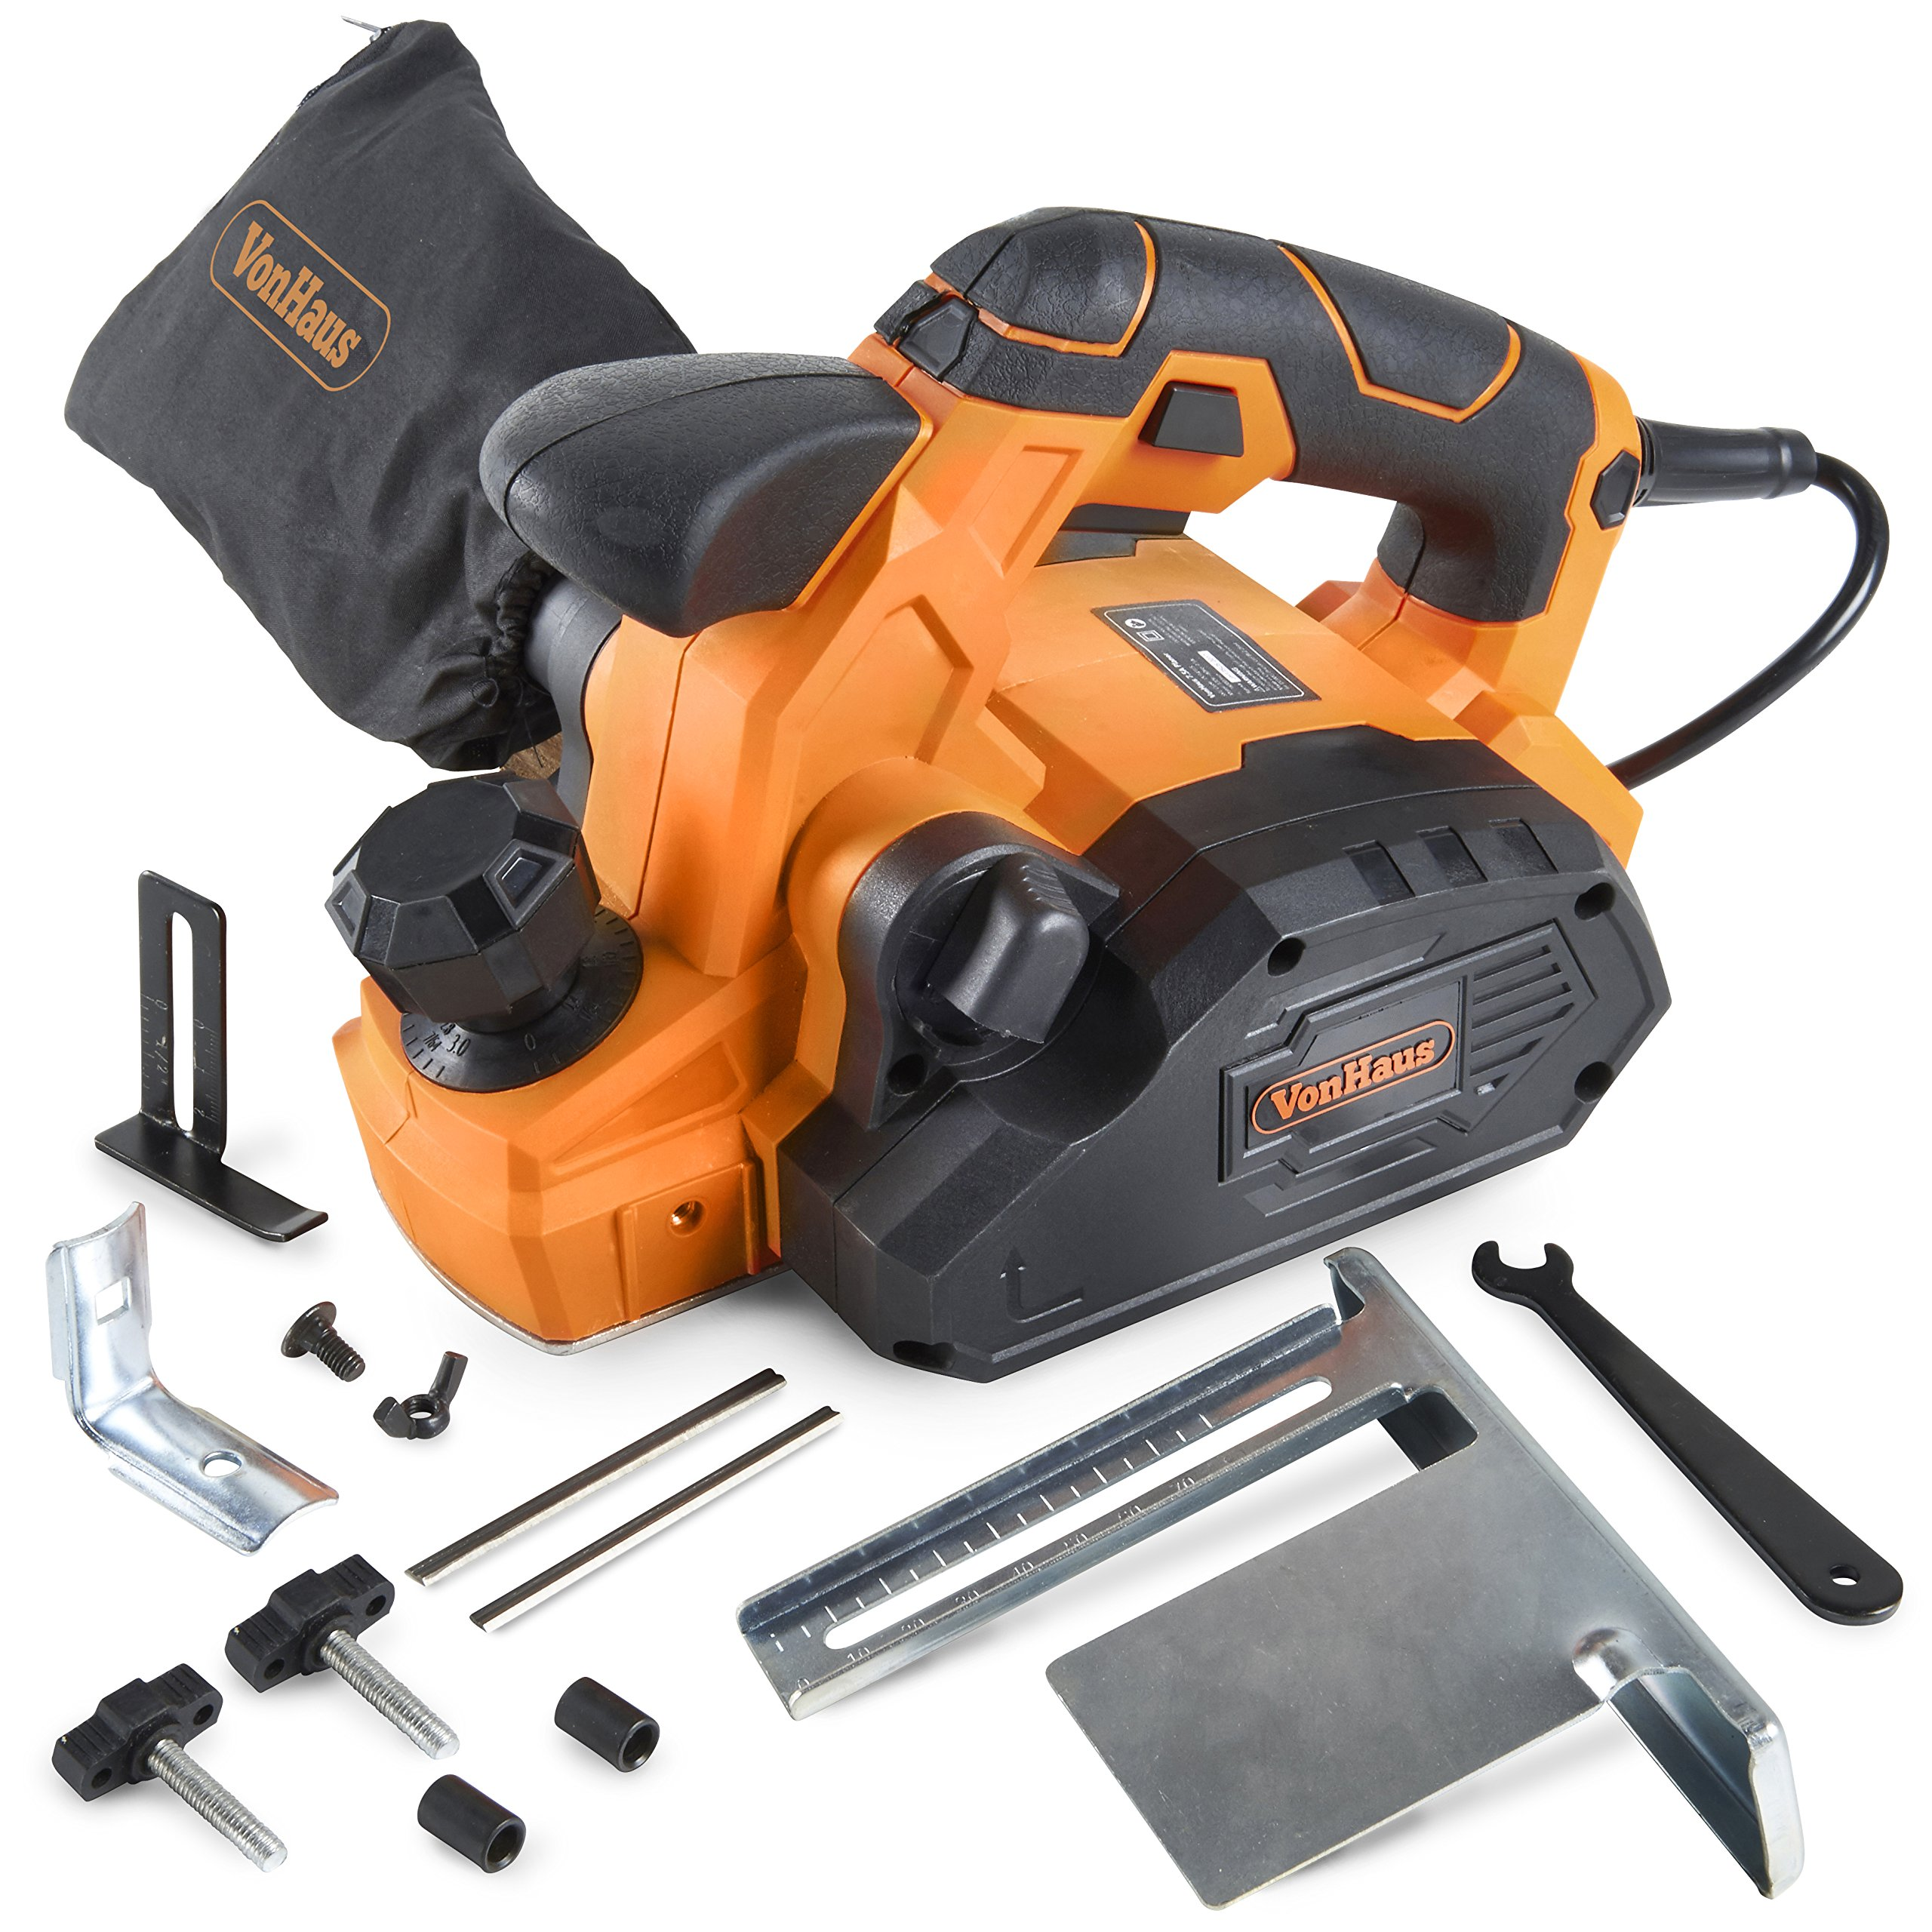 VonHaus 7.5 Amp Electric Wood Hand Planer Kit with 3-1/4'' Planing Width and Extra Set of Planer Replacement Wood Blades